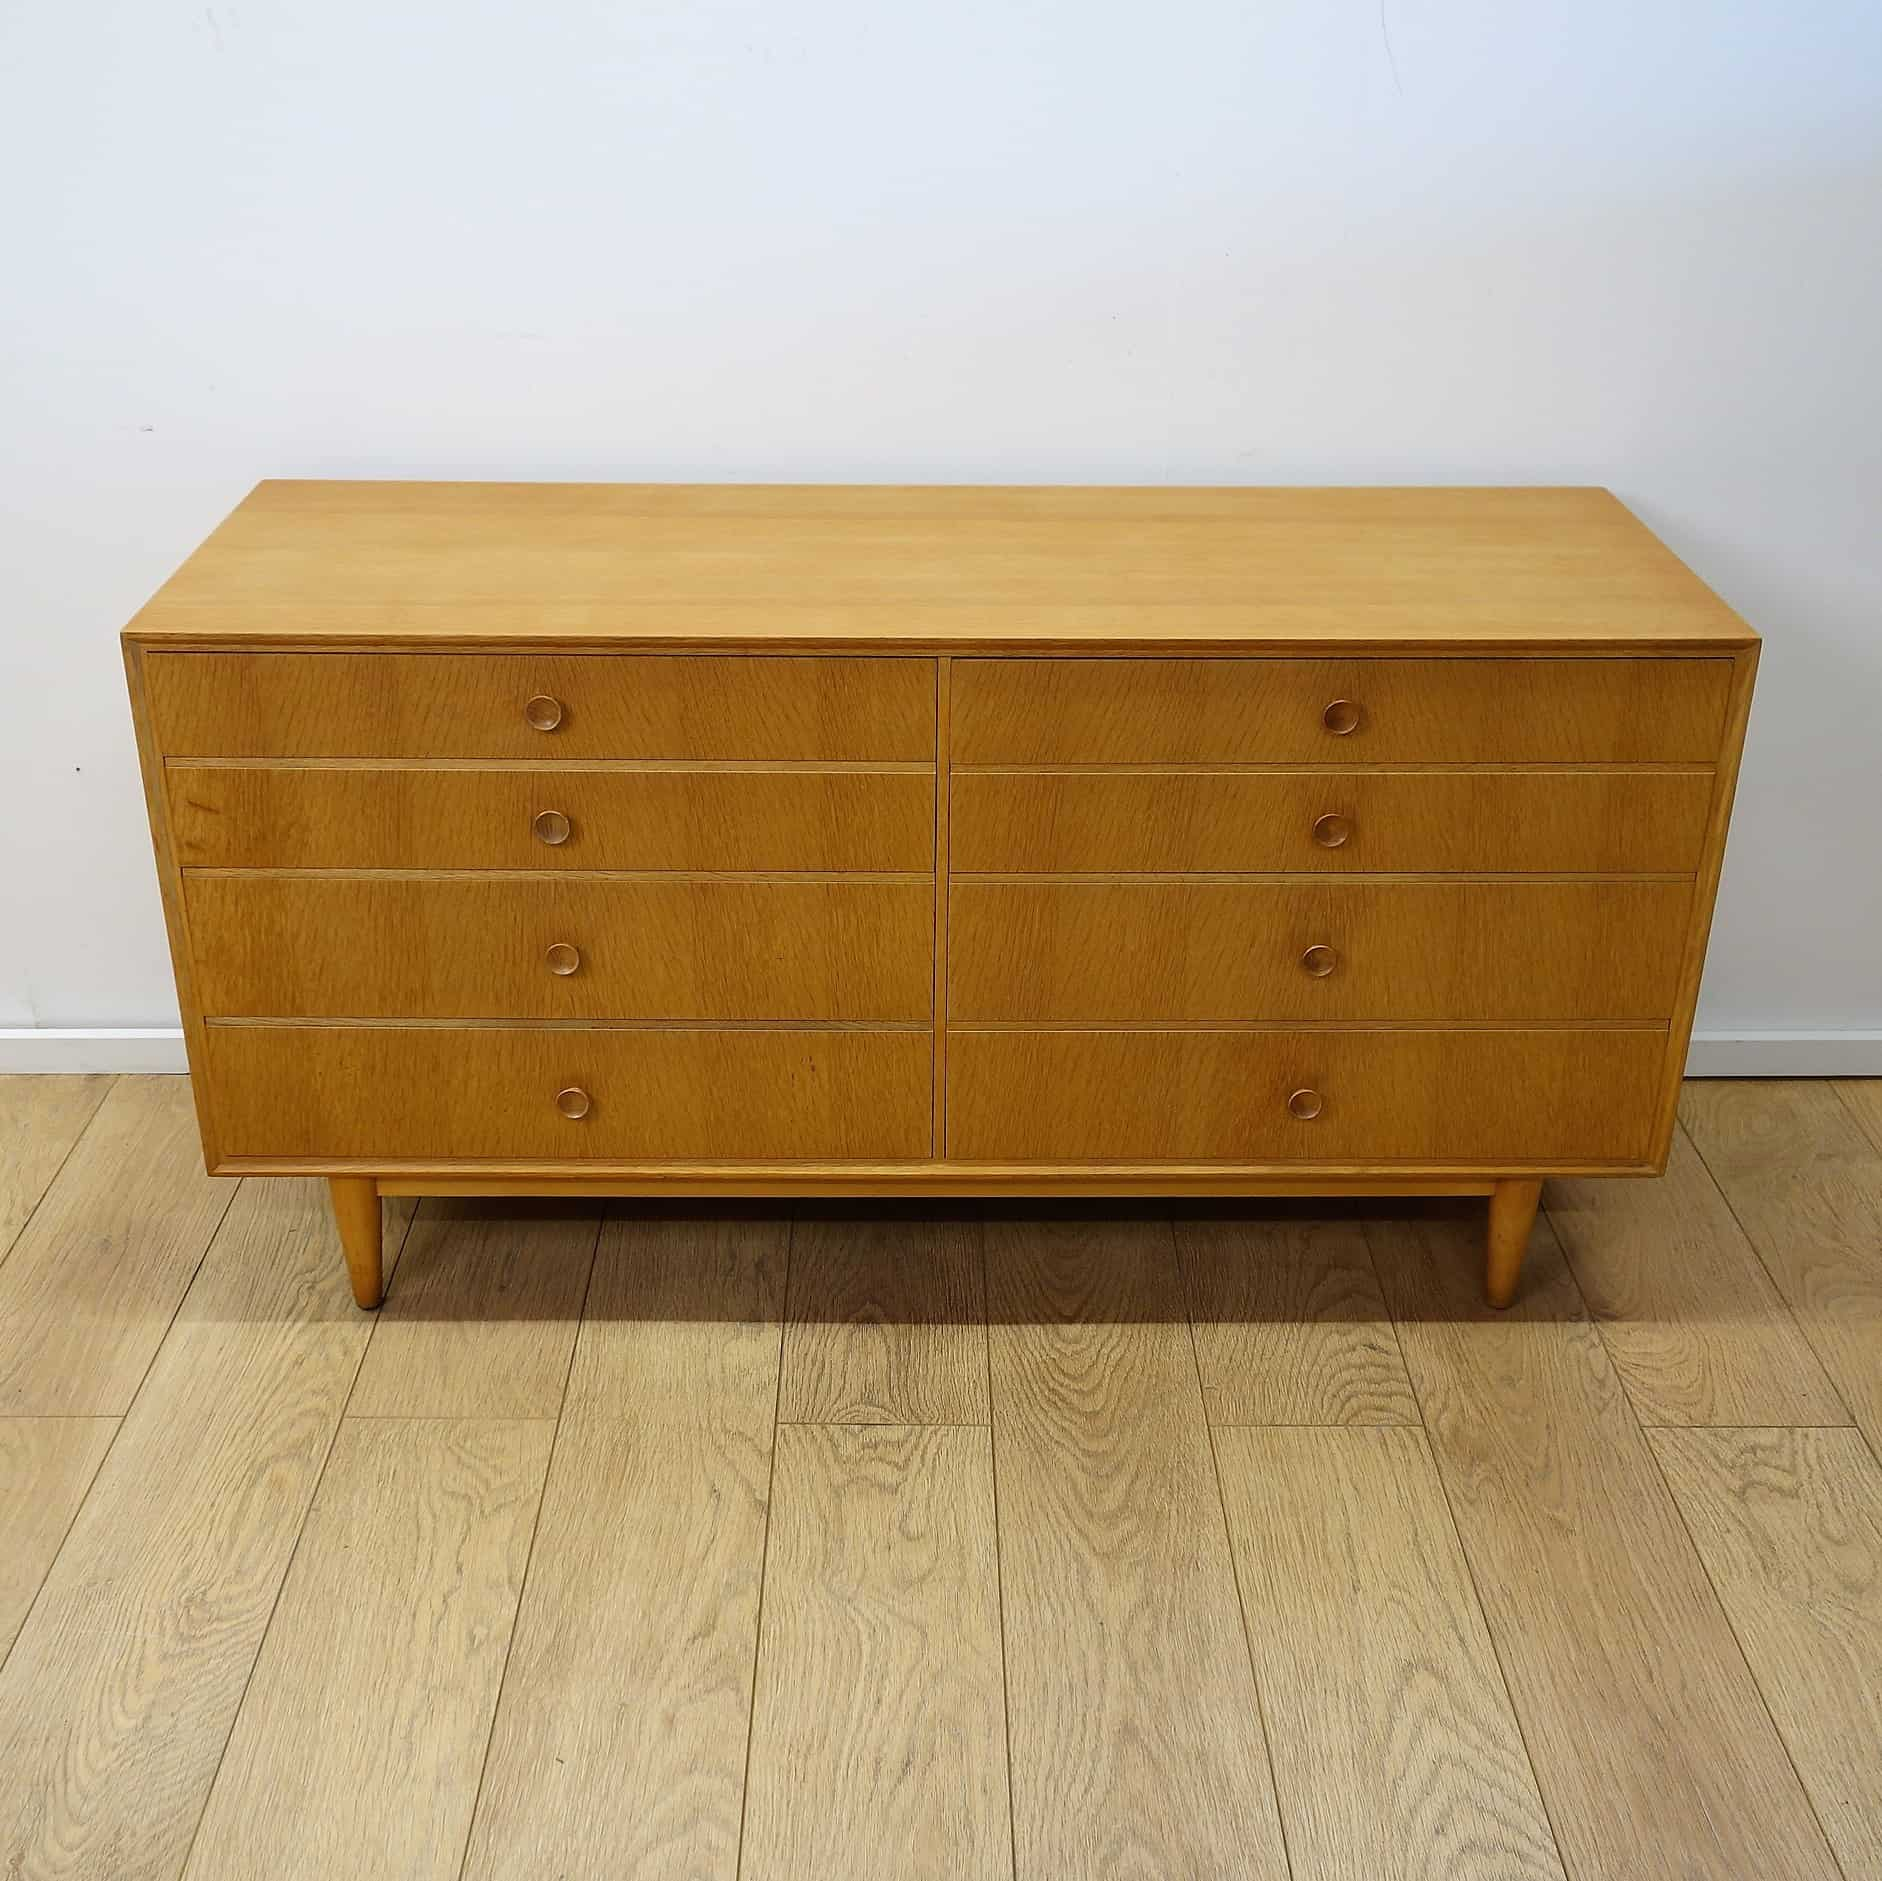 Oak Chest Of Drawers By Meredew Furniture Mark Parrish